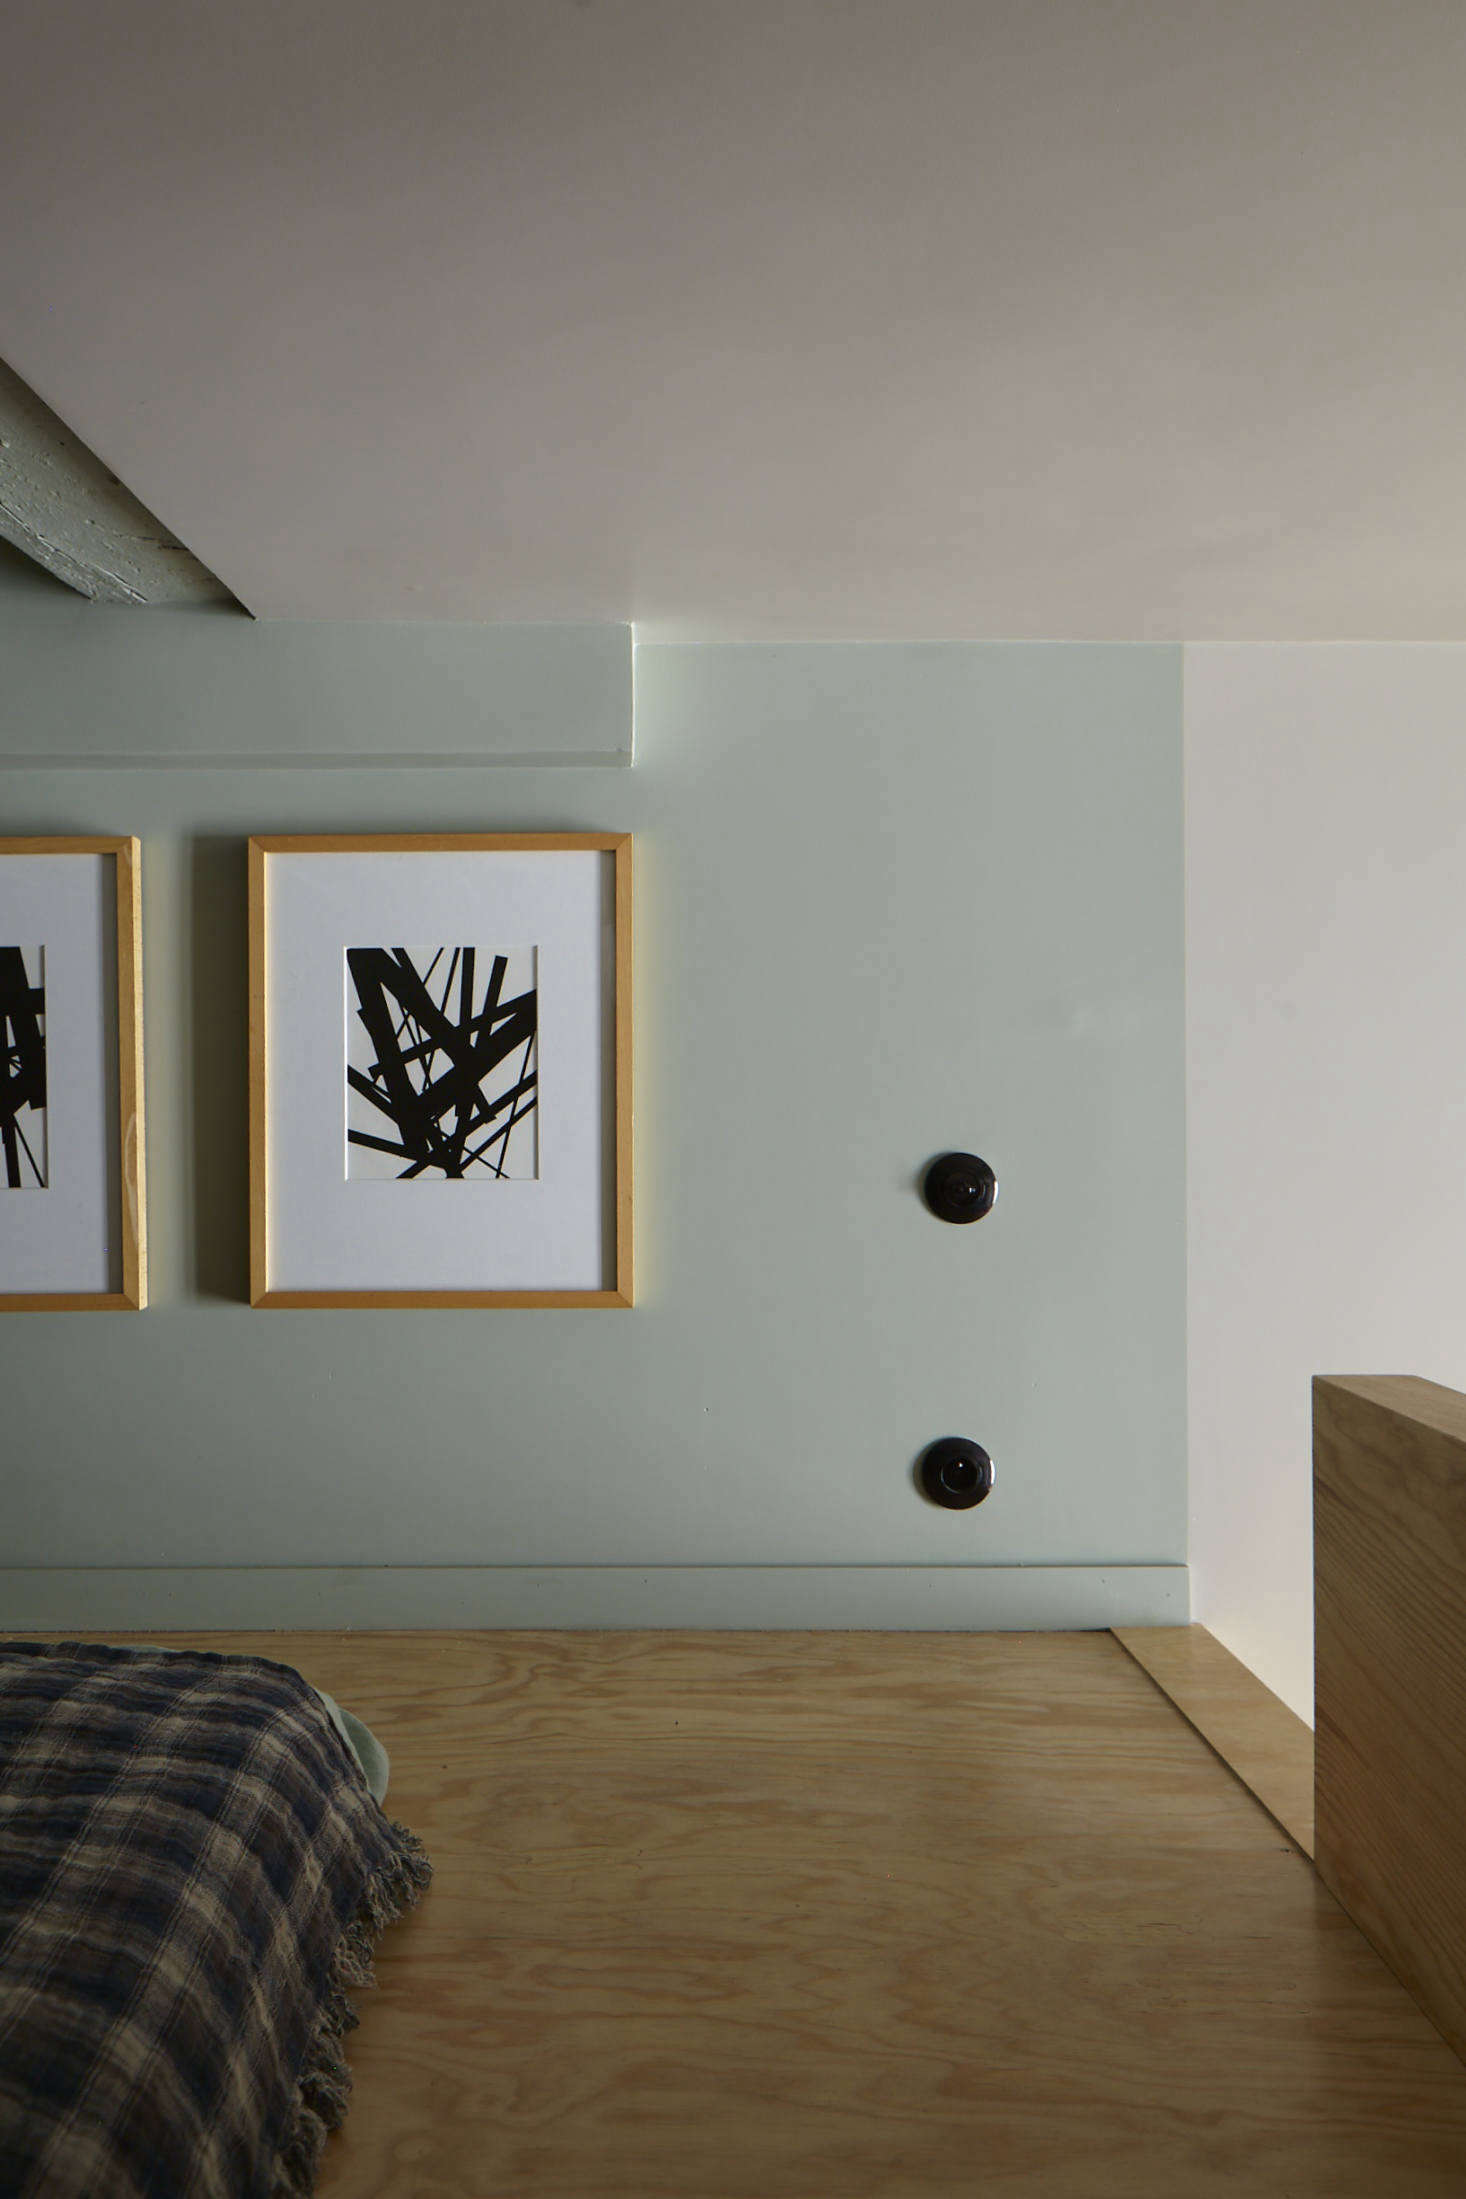 Minimal art and furniture keeps the space open and inviting, not claustrophobic.